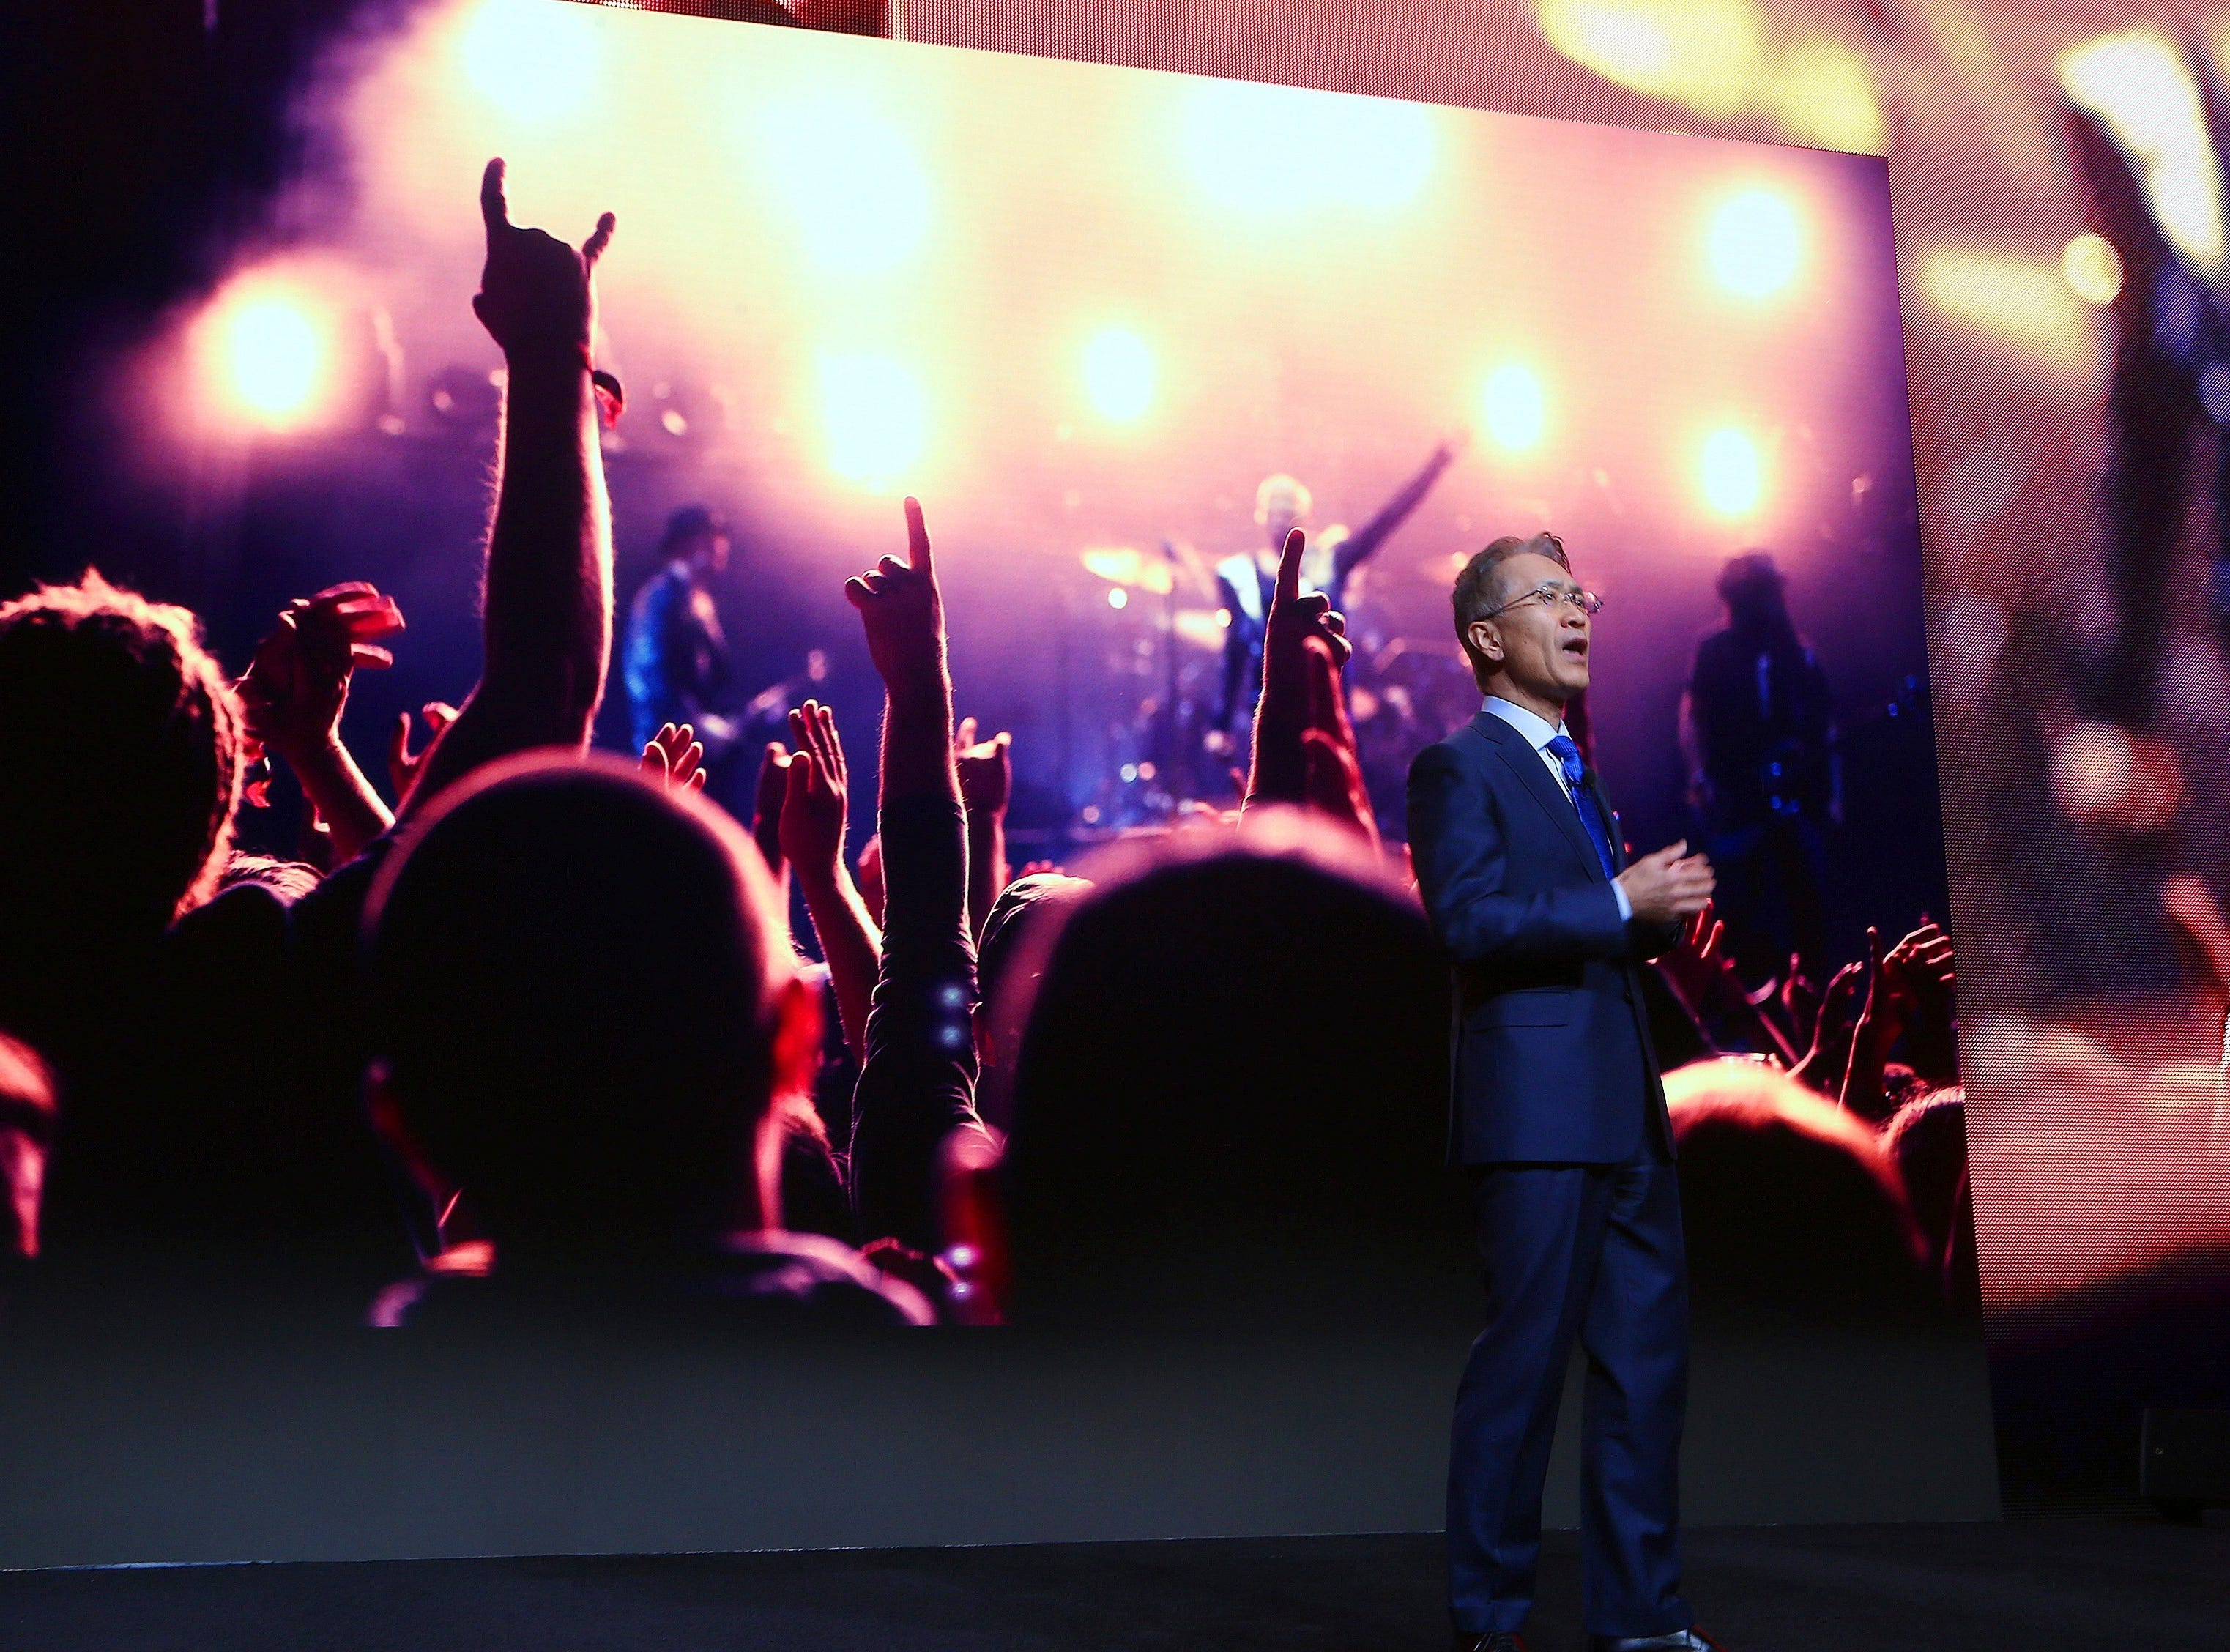 Kenichiro Yoshida, president and CEO of Sony, talks about a variety of Sony products at the Sony news conference at CES International on Monday, Jan. 7, 2019, in Las Vegas.